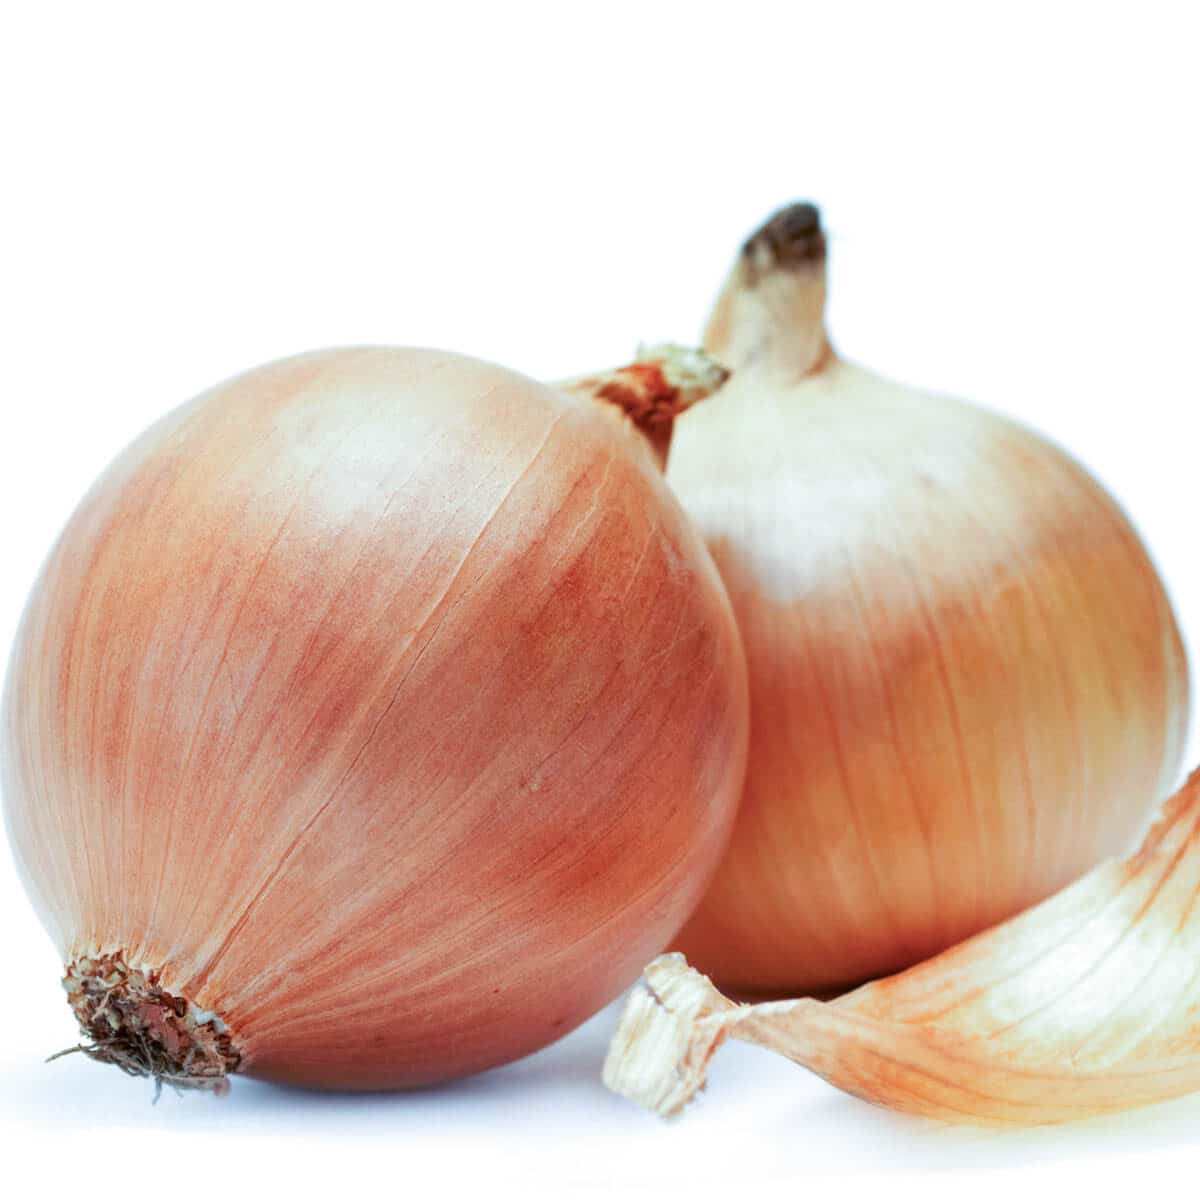 2 white onions with an onion skin laying next to them